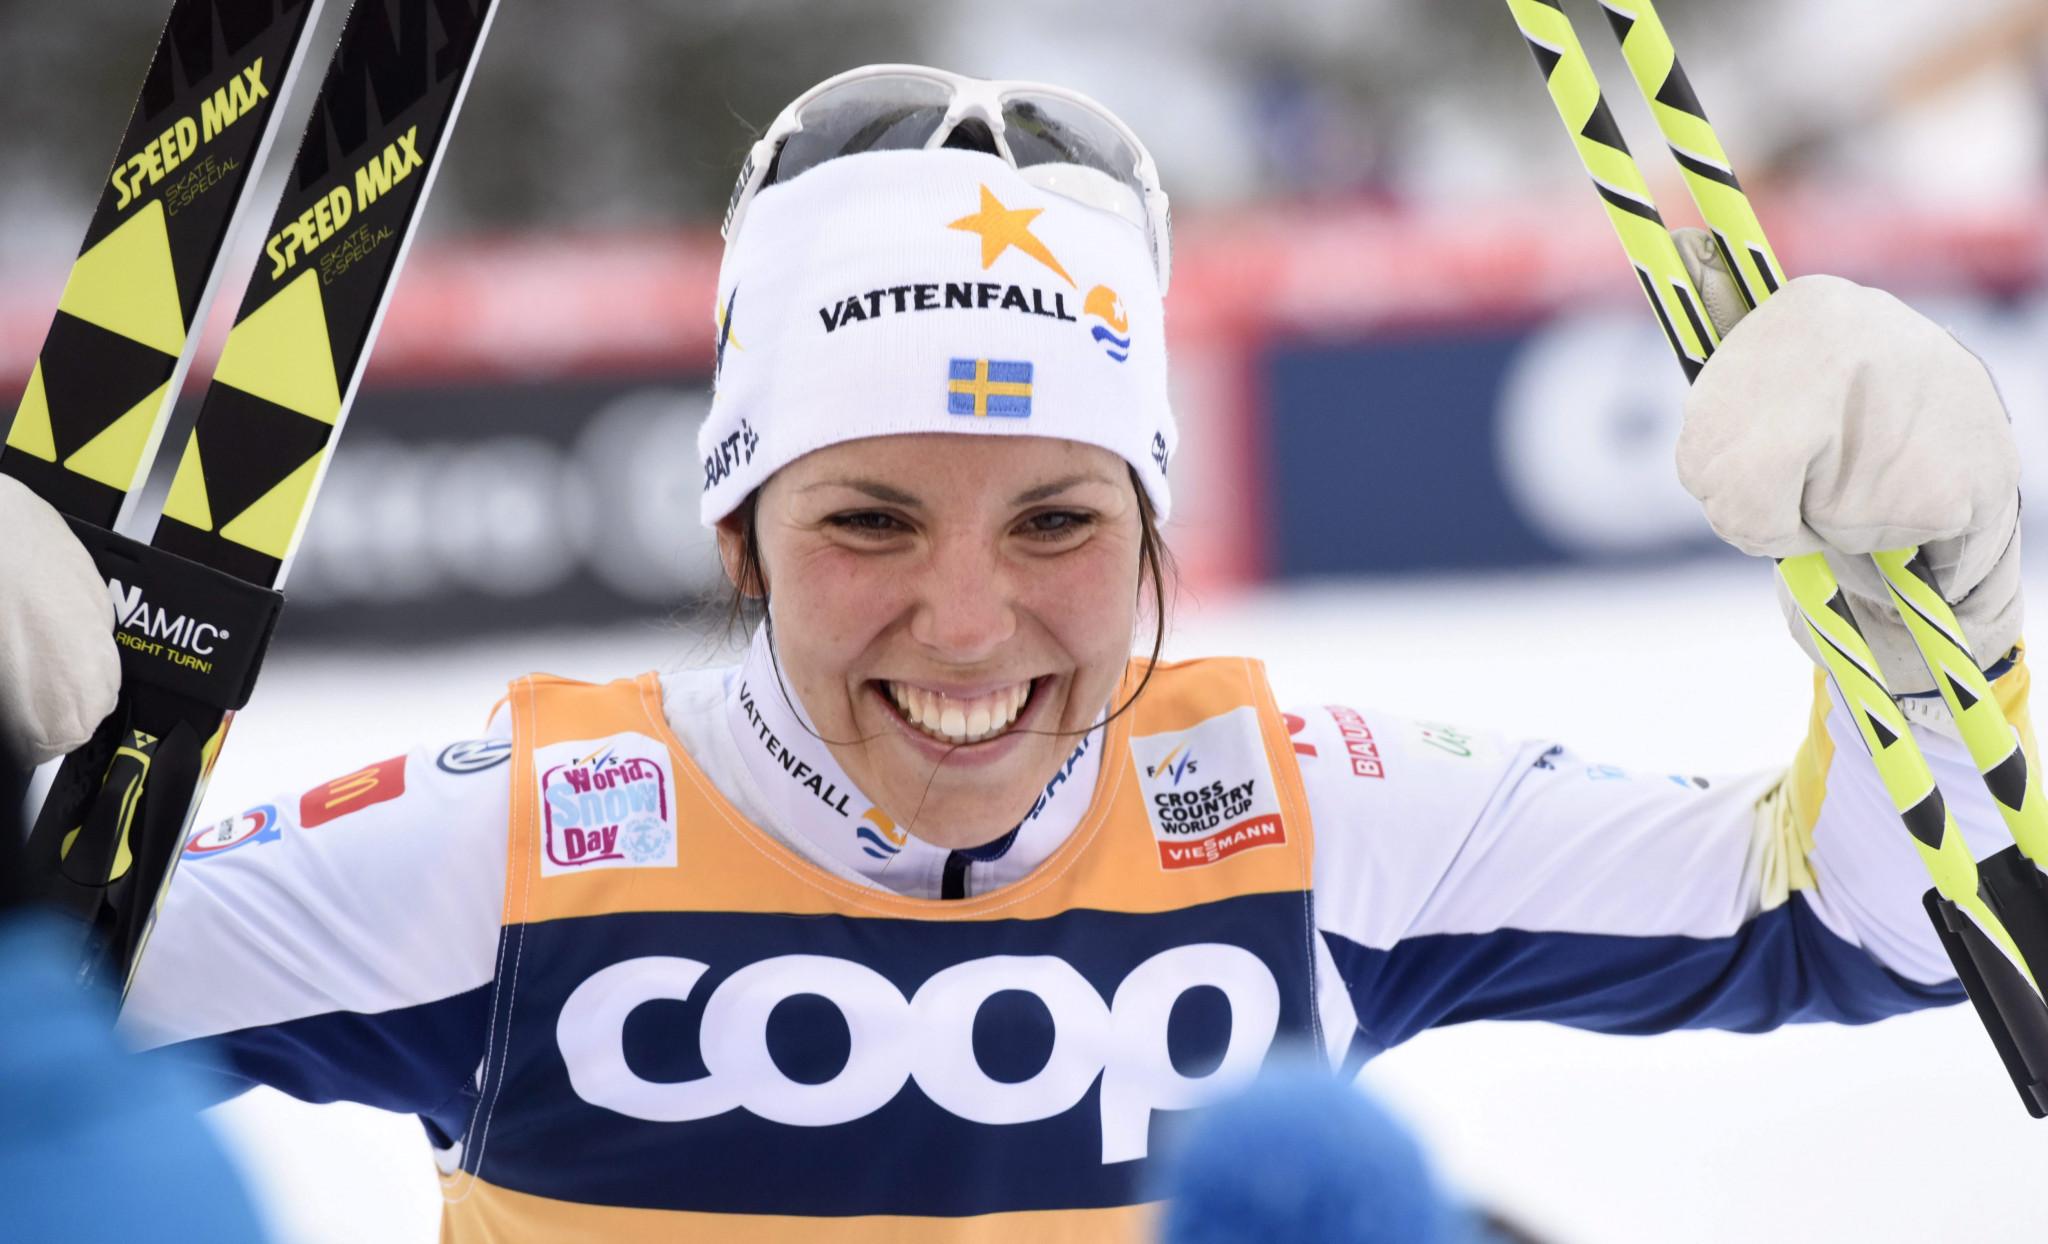 Sweden's Charlotte Kalla won the women's FIS Cross-Country World Cup event in Toblach ©Getty Images